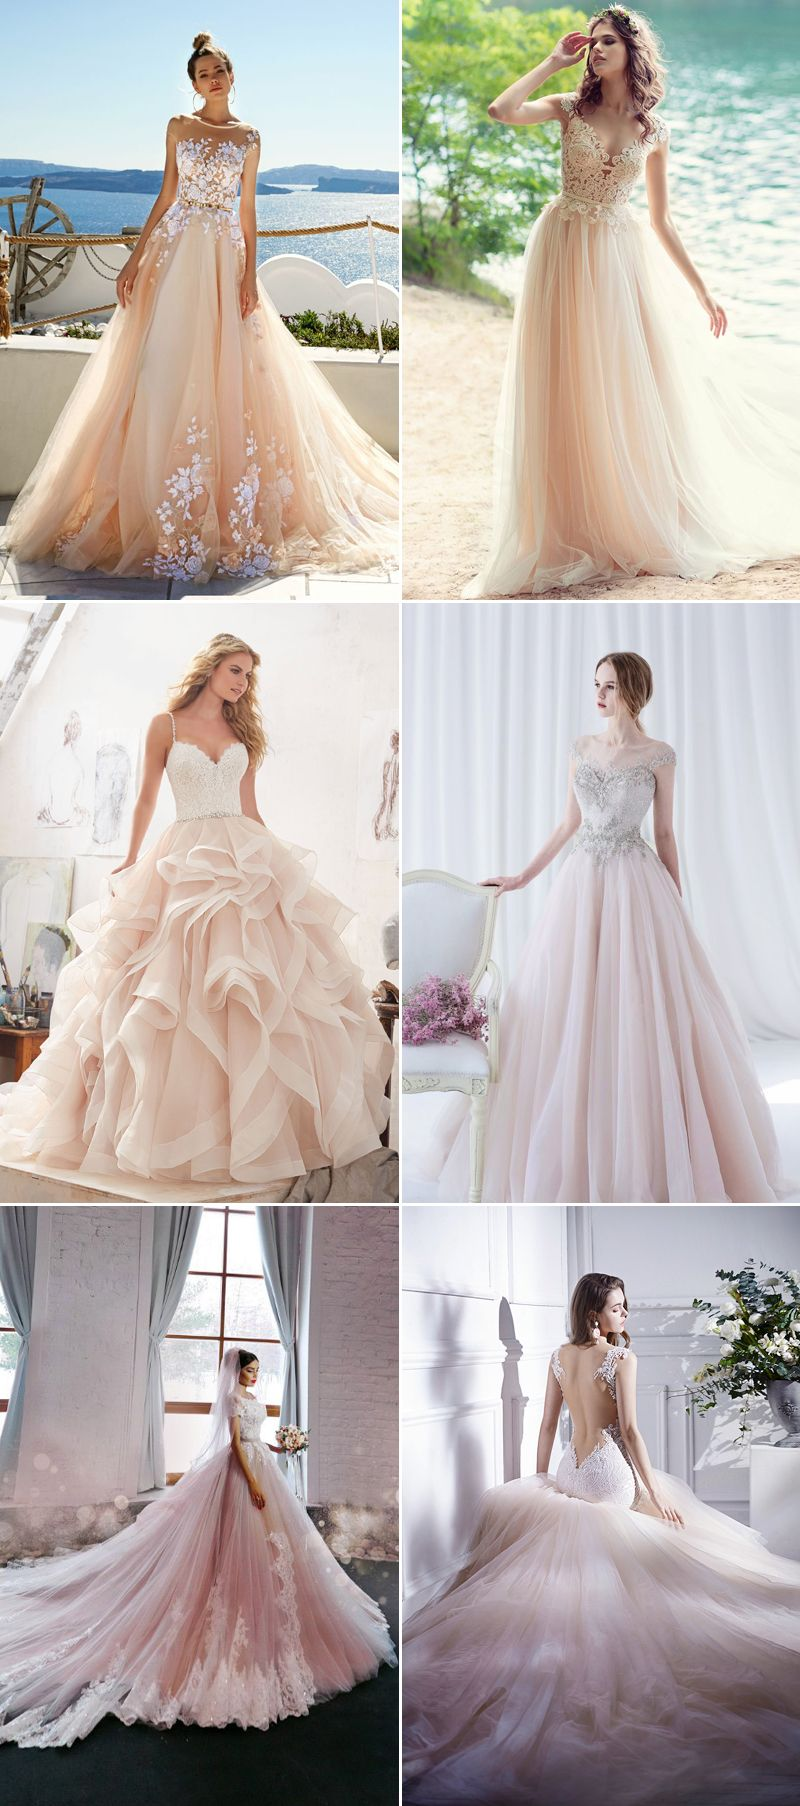 A Dash Of Romance 30 Wedding Dresses With A Touch Of Pink Wedding Dresses Beautiful Wedding Dresses Colored Wedding Gowns